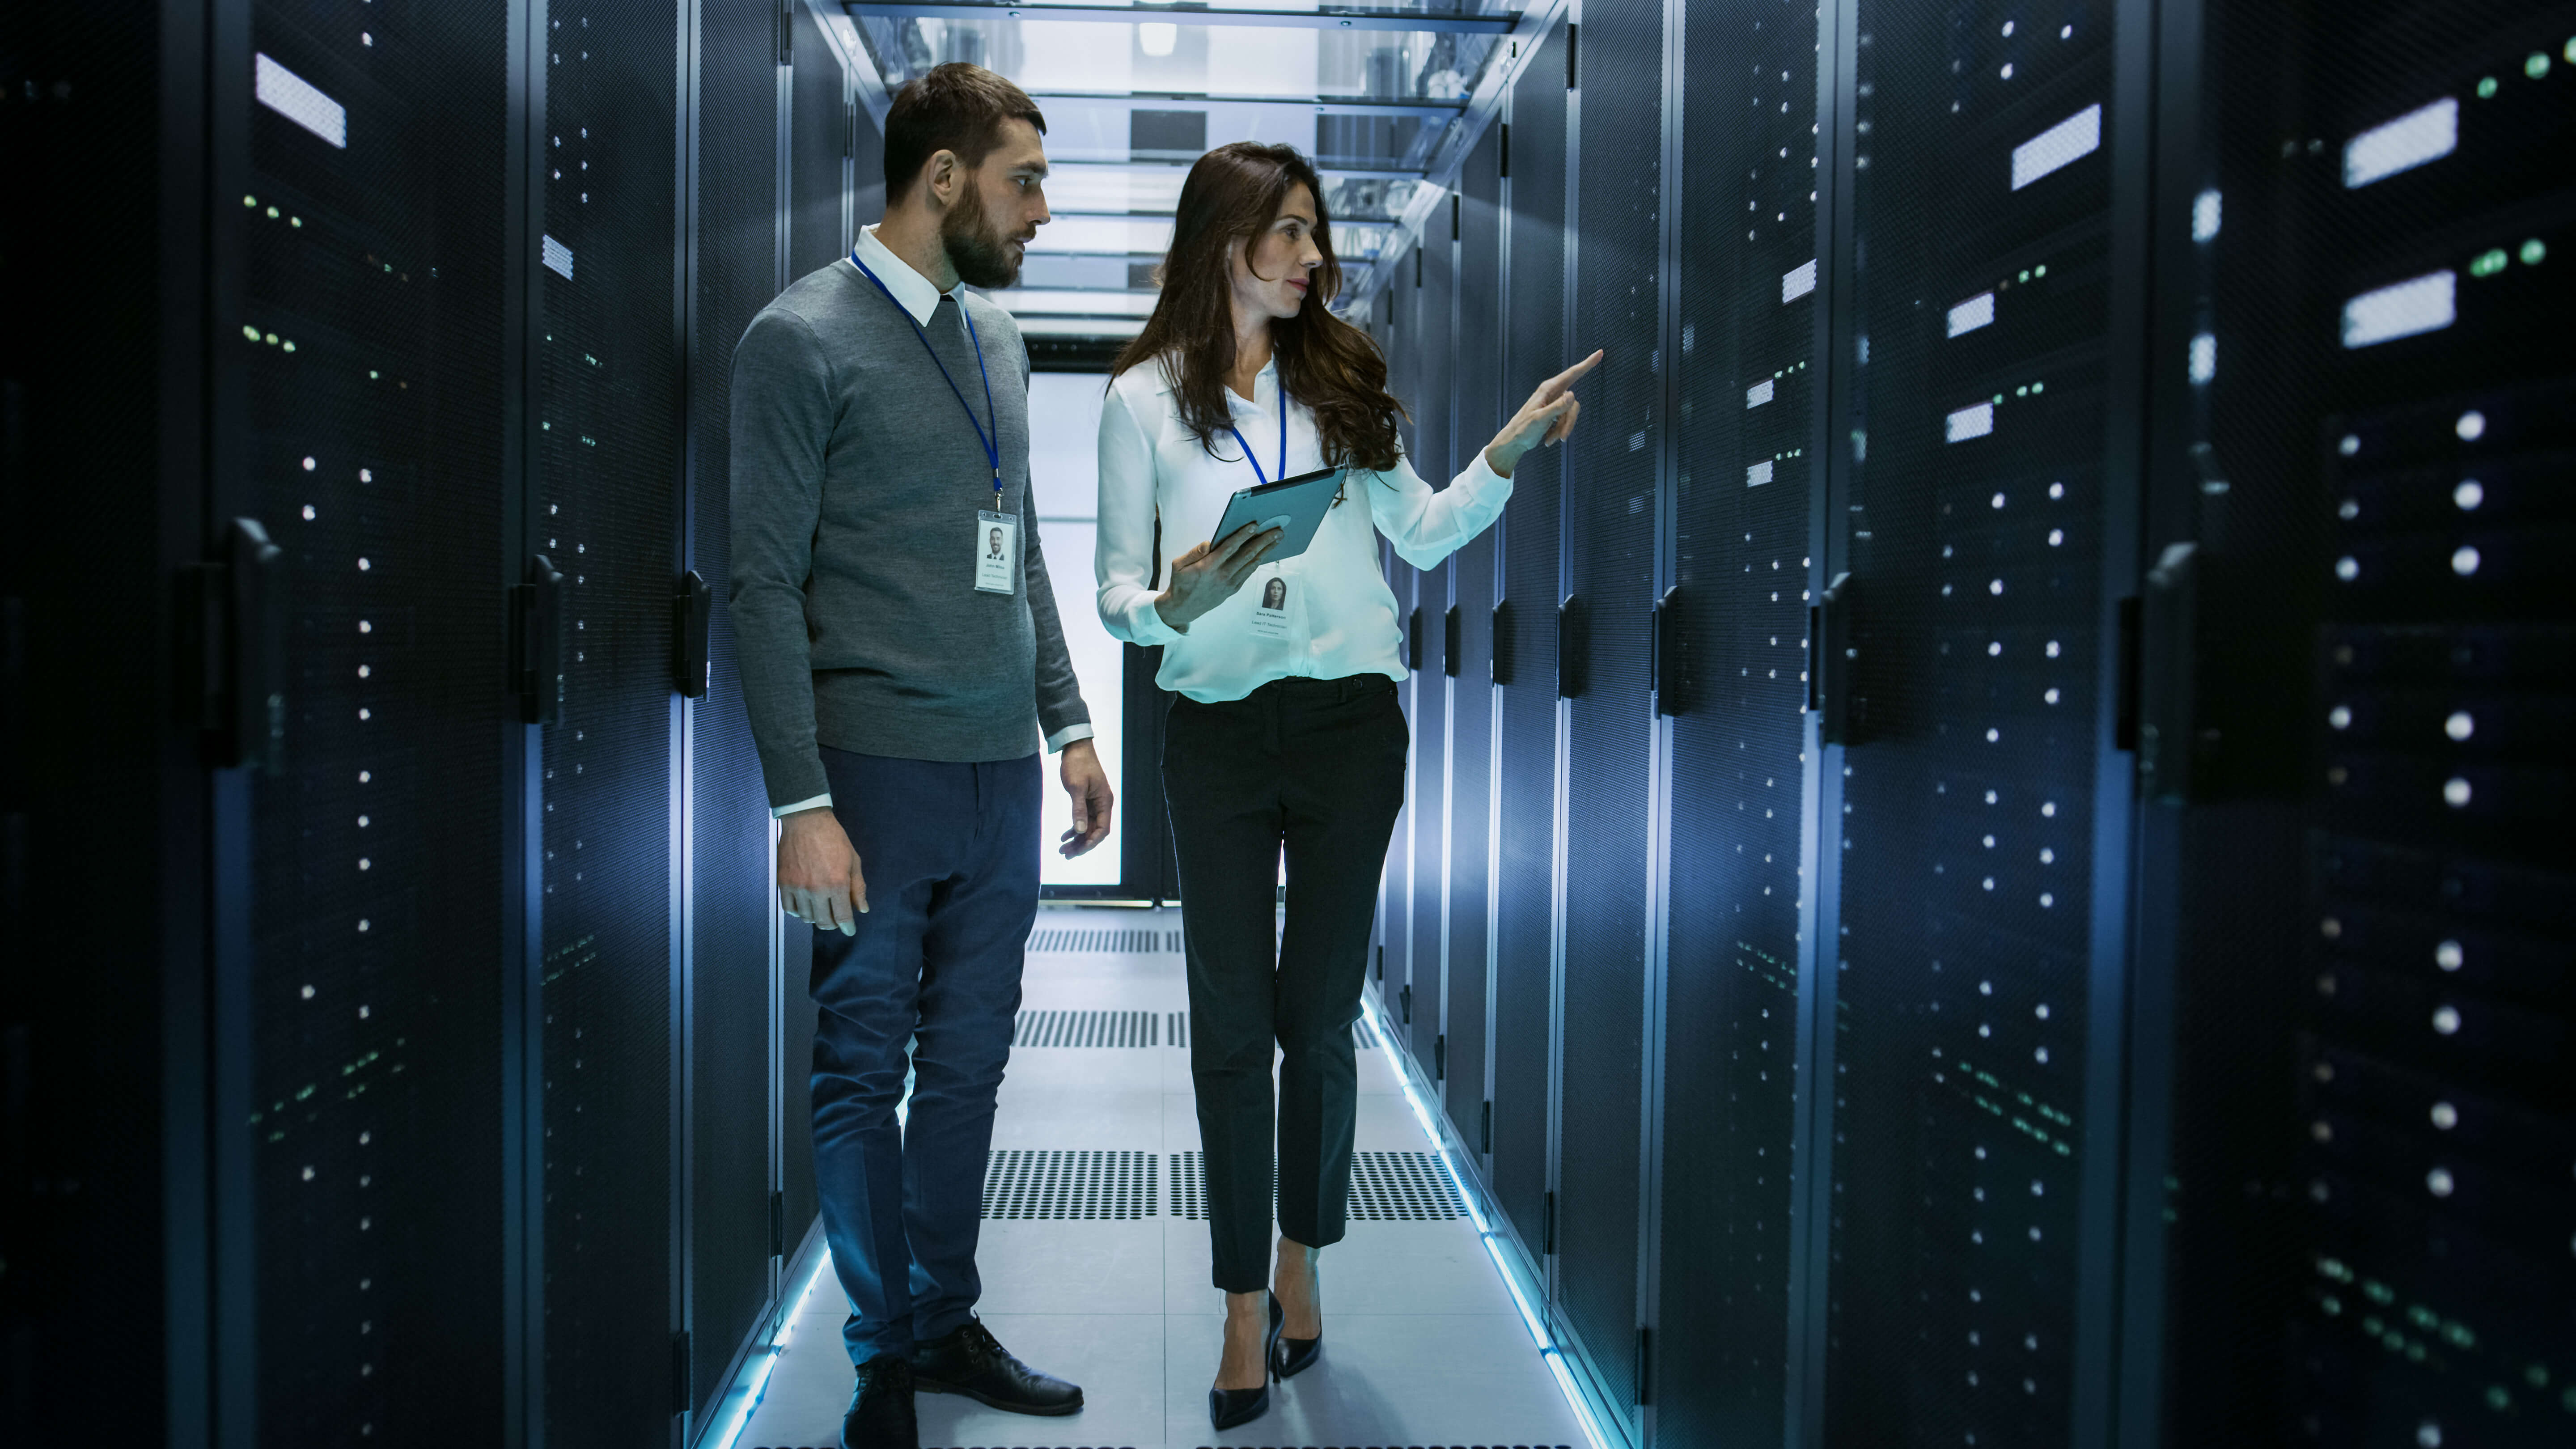 The benefits of augmented analytics are clear, but there are several factors need to be considered before procuring one for your enterprise. Source: Shutterstock